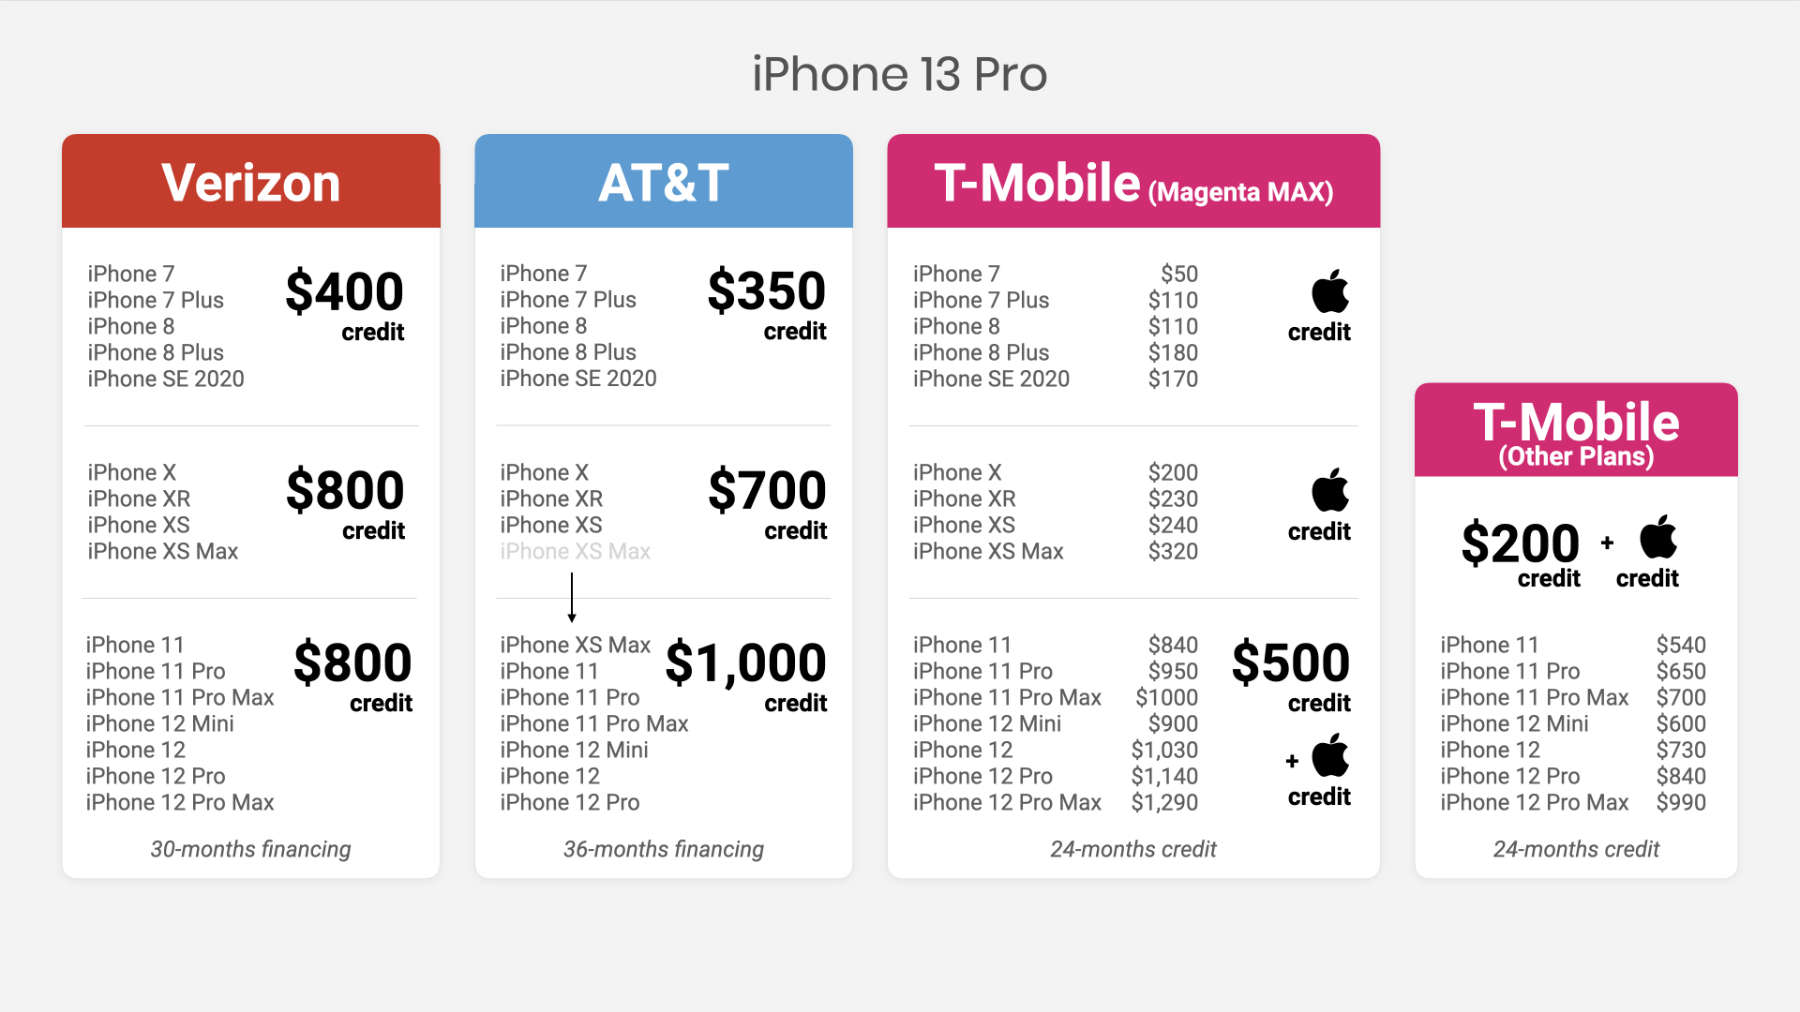 iPhone 13 trade-in deals from Verizon, AT&T, and T-Mobile